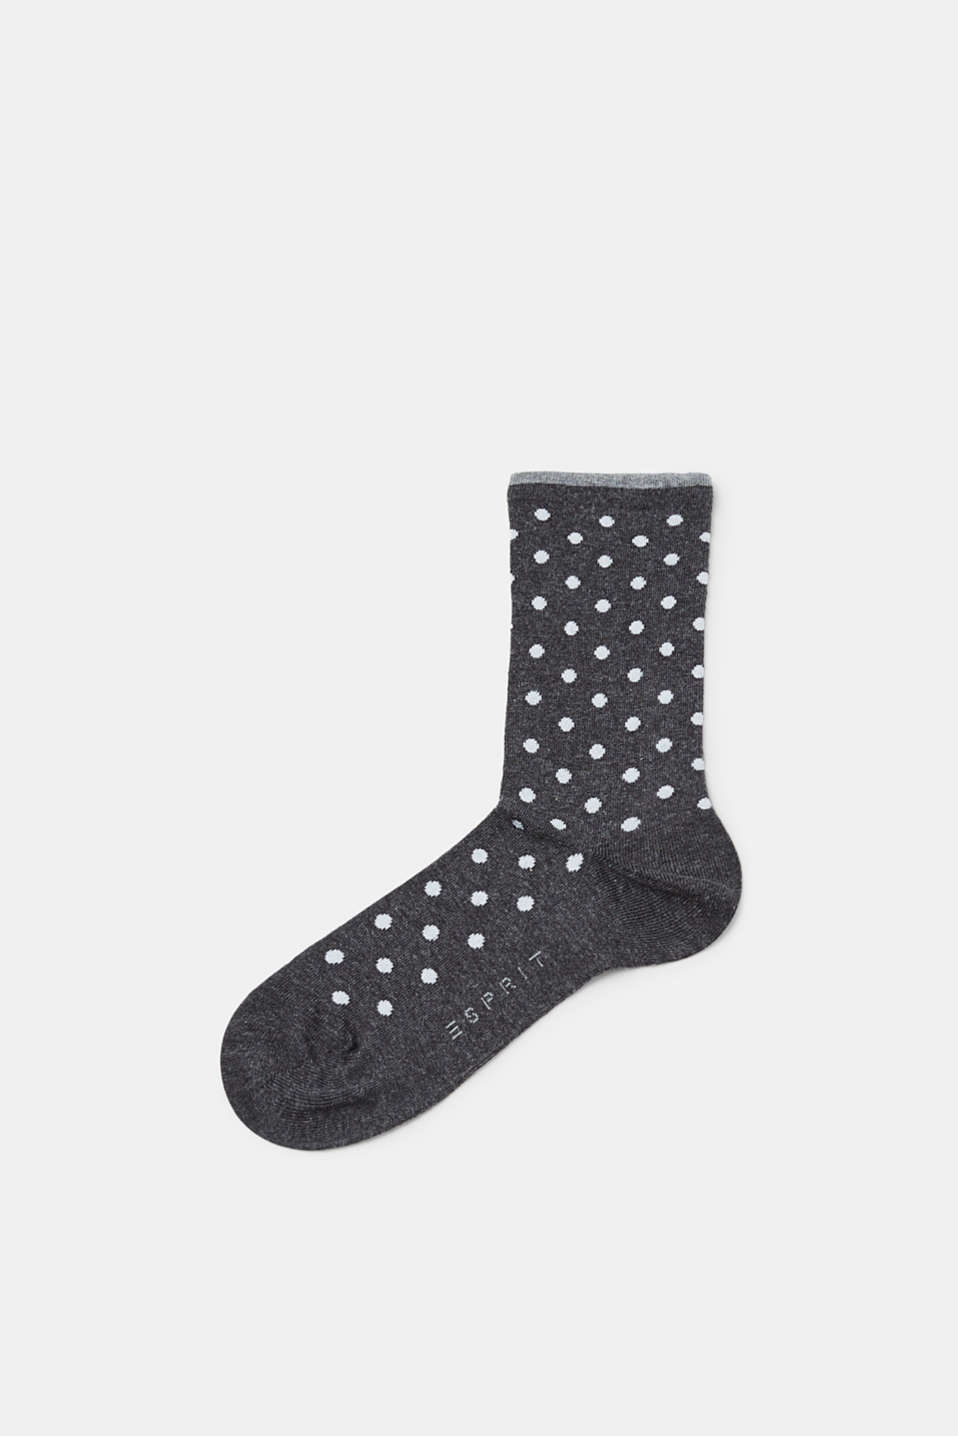 Esprit - Melange socks with polka dots